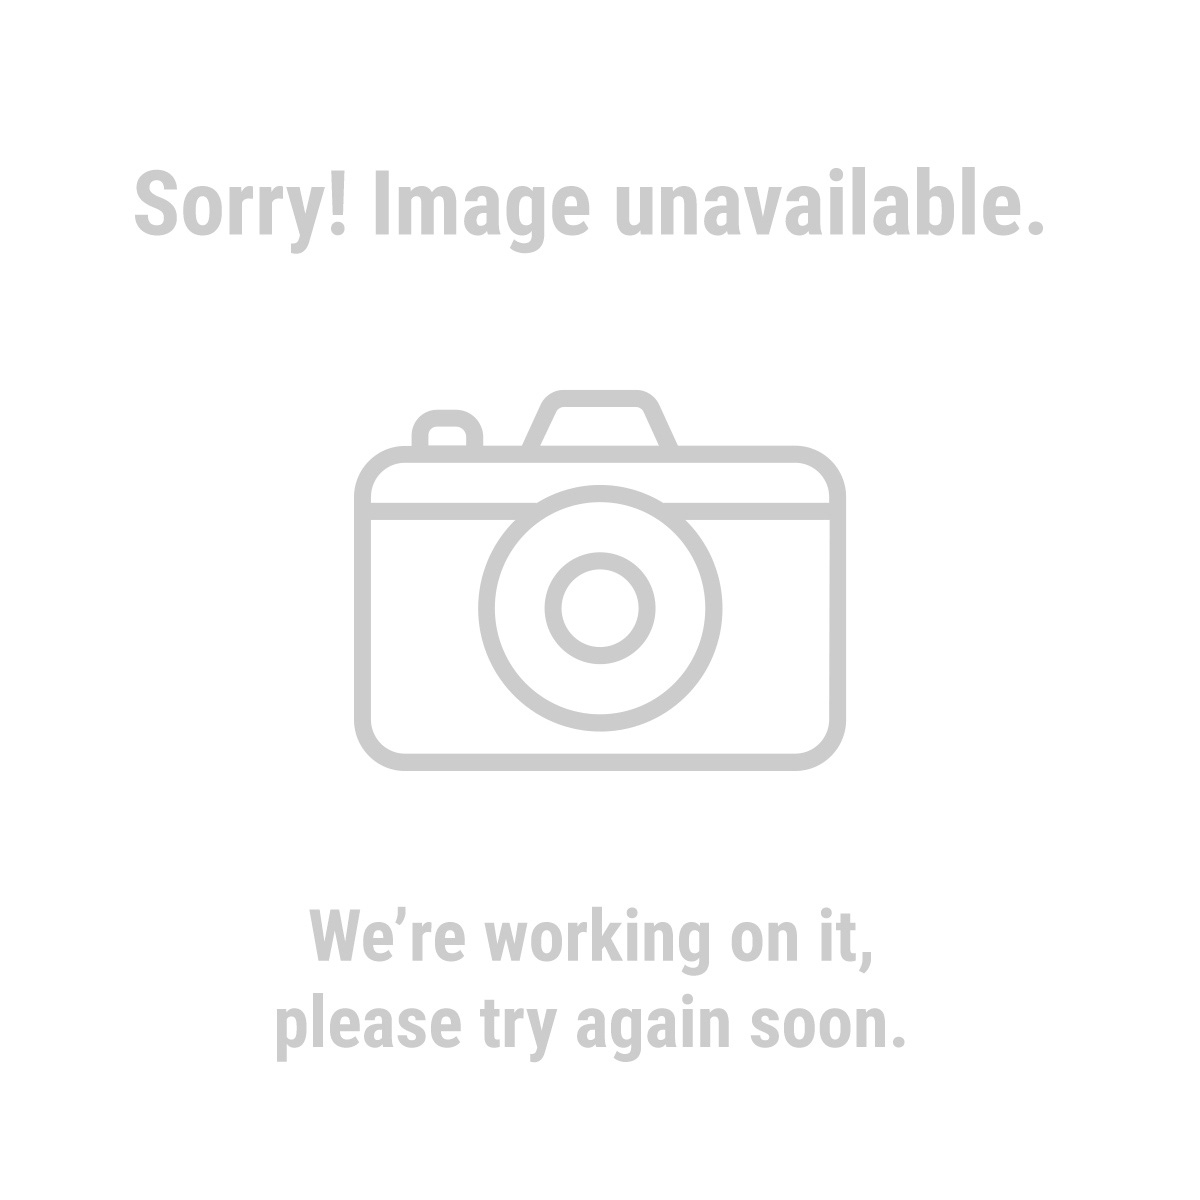 "Haul Master Shop 30900 10"" Pneumatic Tire"